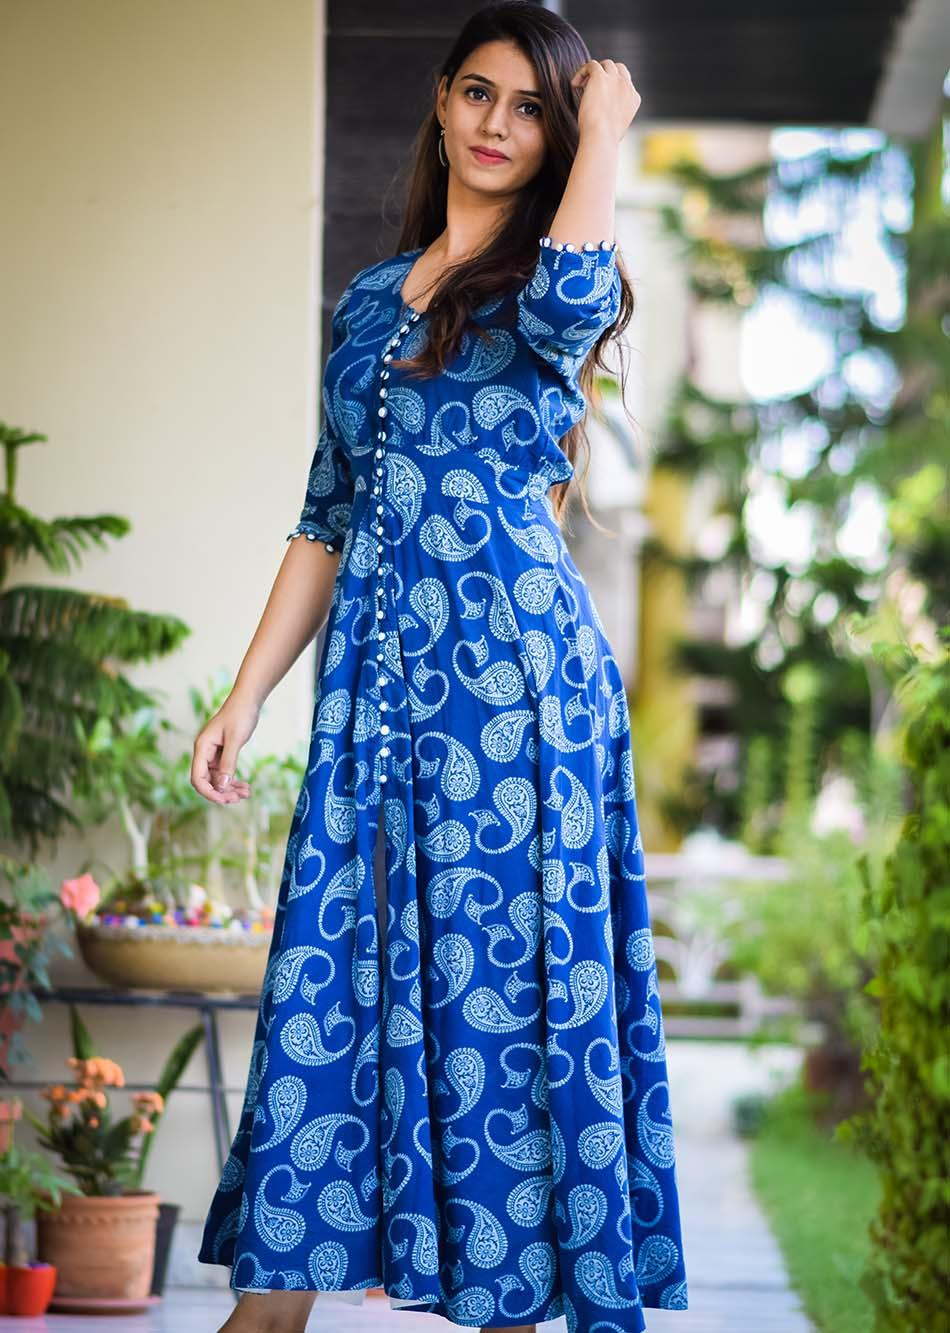 ecstatic day - royal blue and white By Jovi Fashion